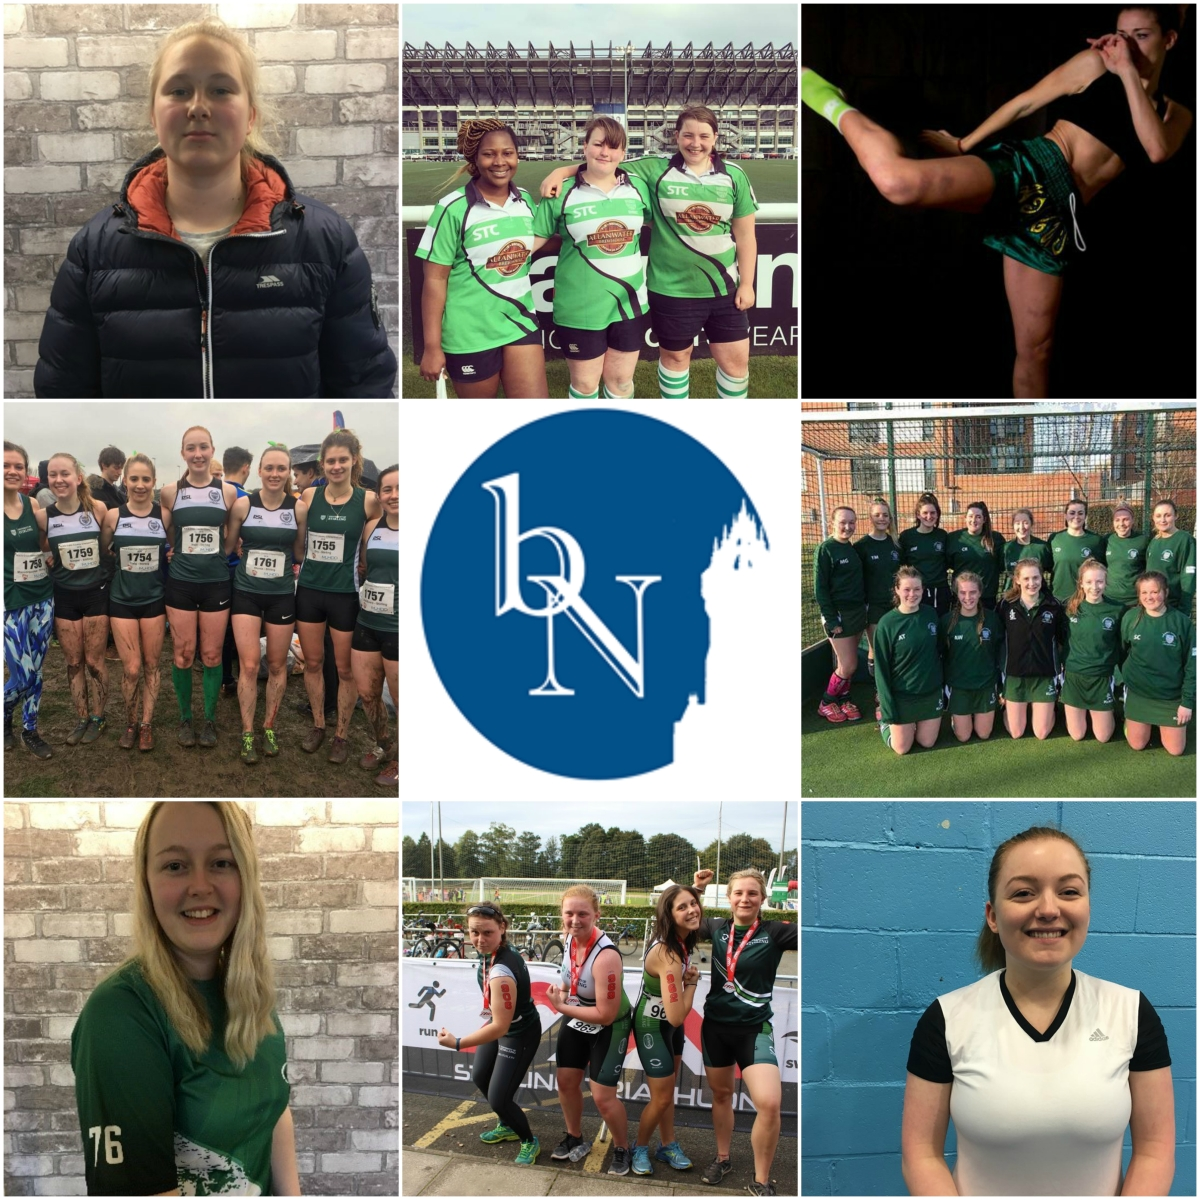 Week of Women: University of Stirling's female athletes lead by example